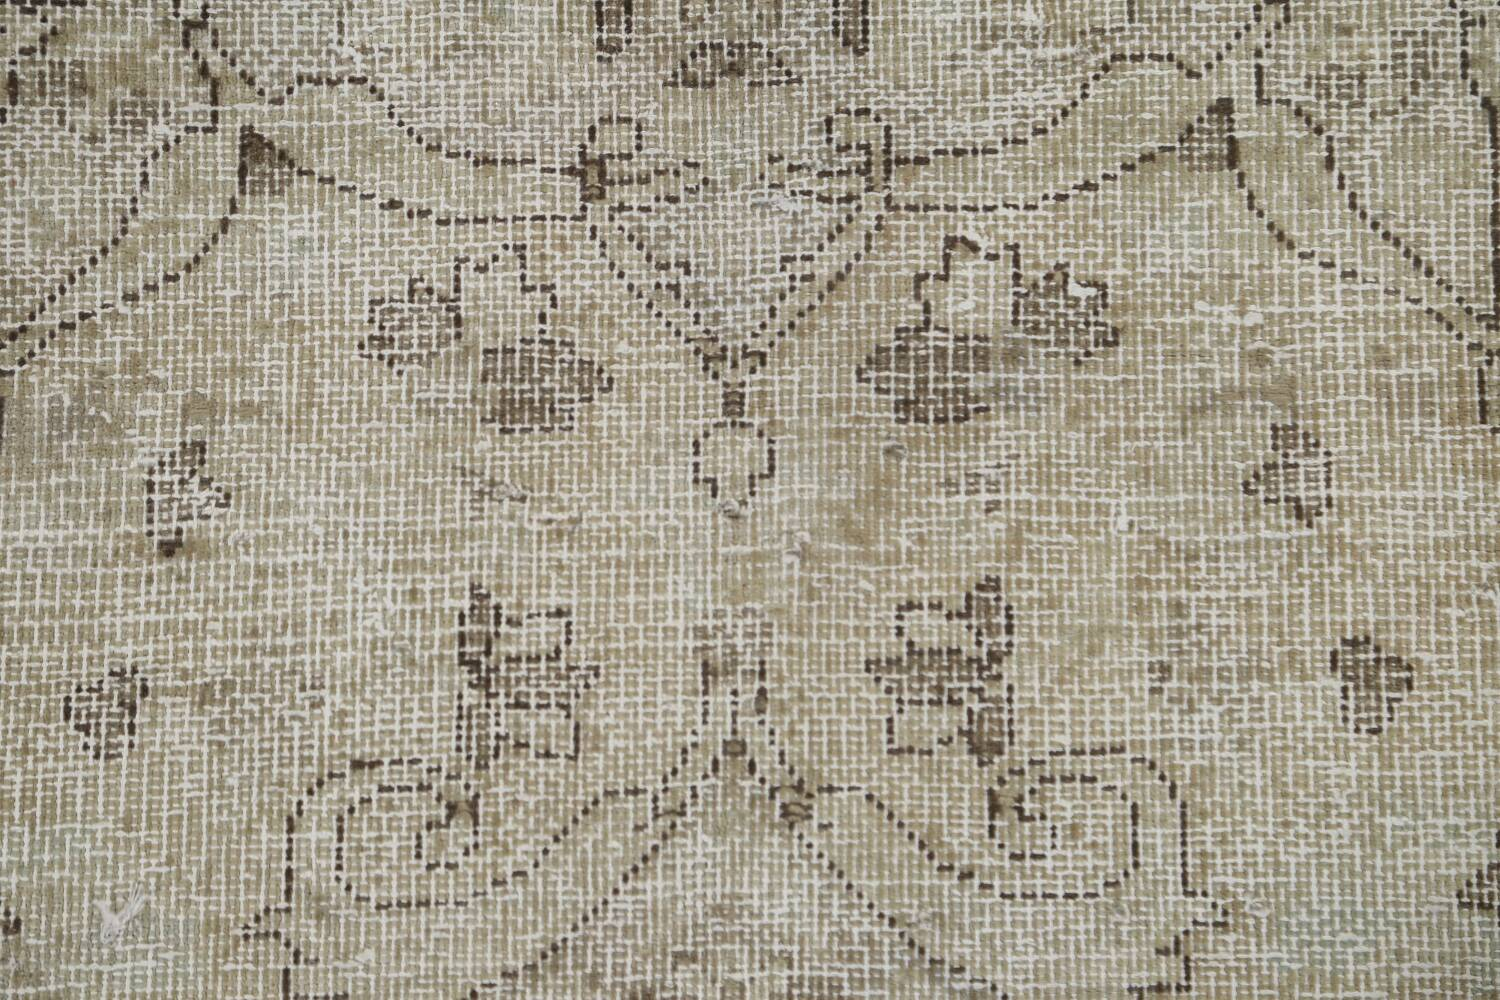 Muted Distressed Floral Tabriz Persian Area Rug 10x13 image 12